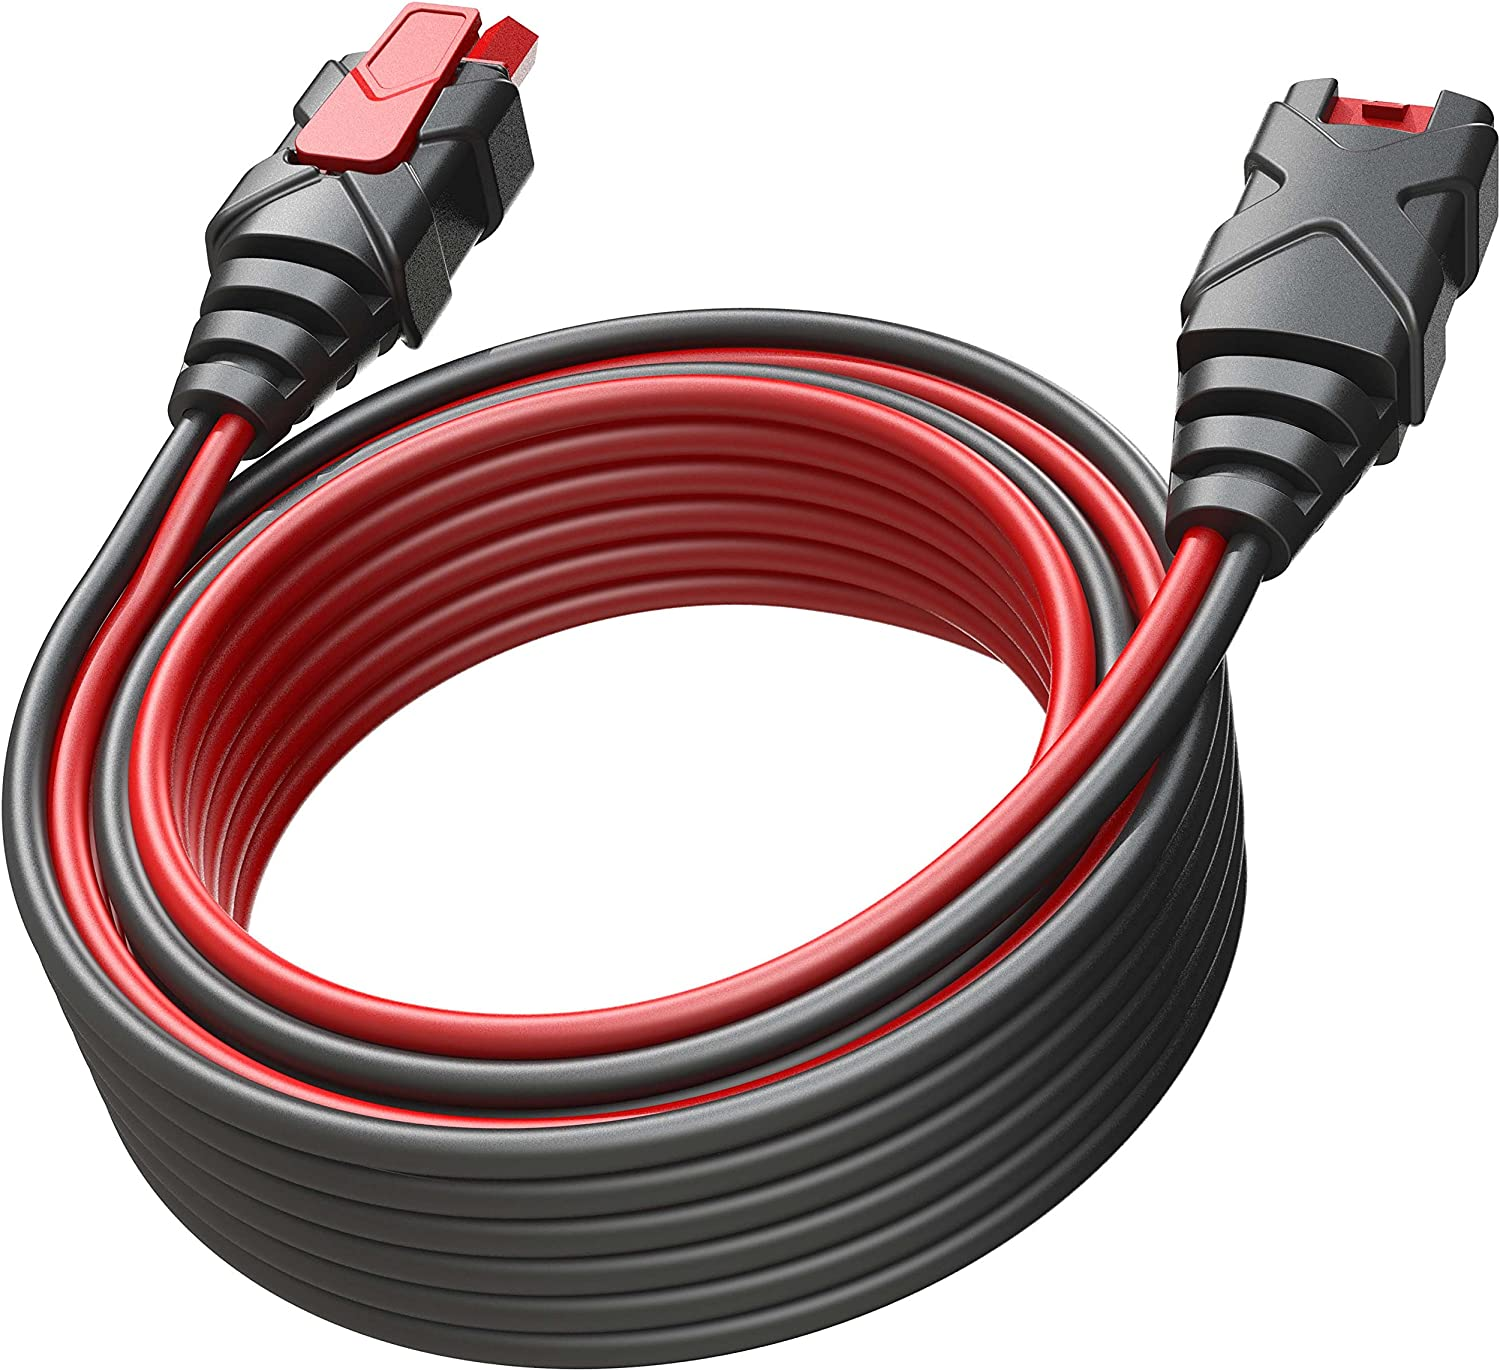 Noco Gc004 X Connect 3 Metre Extension Cable Accessory For Genius Smart Battery Chargers Auto